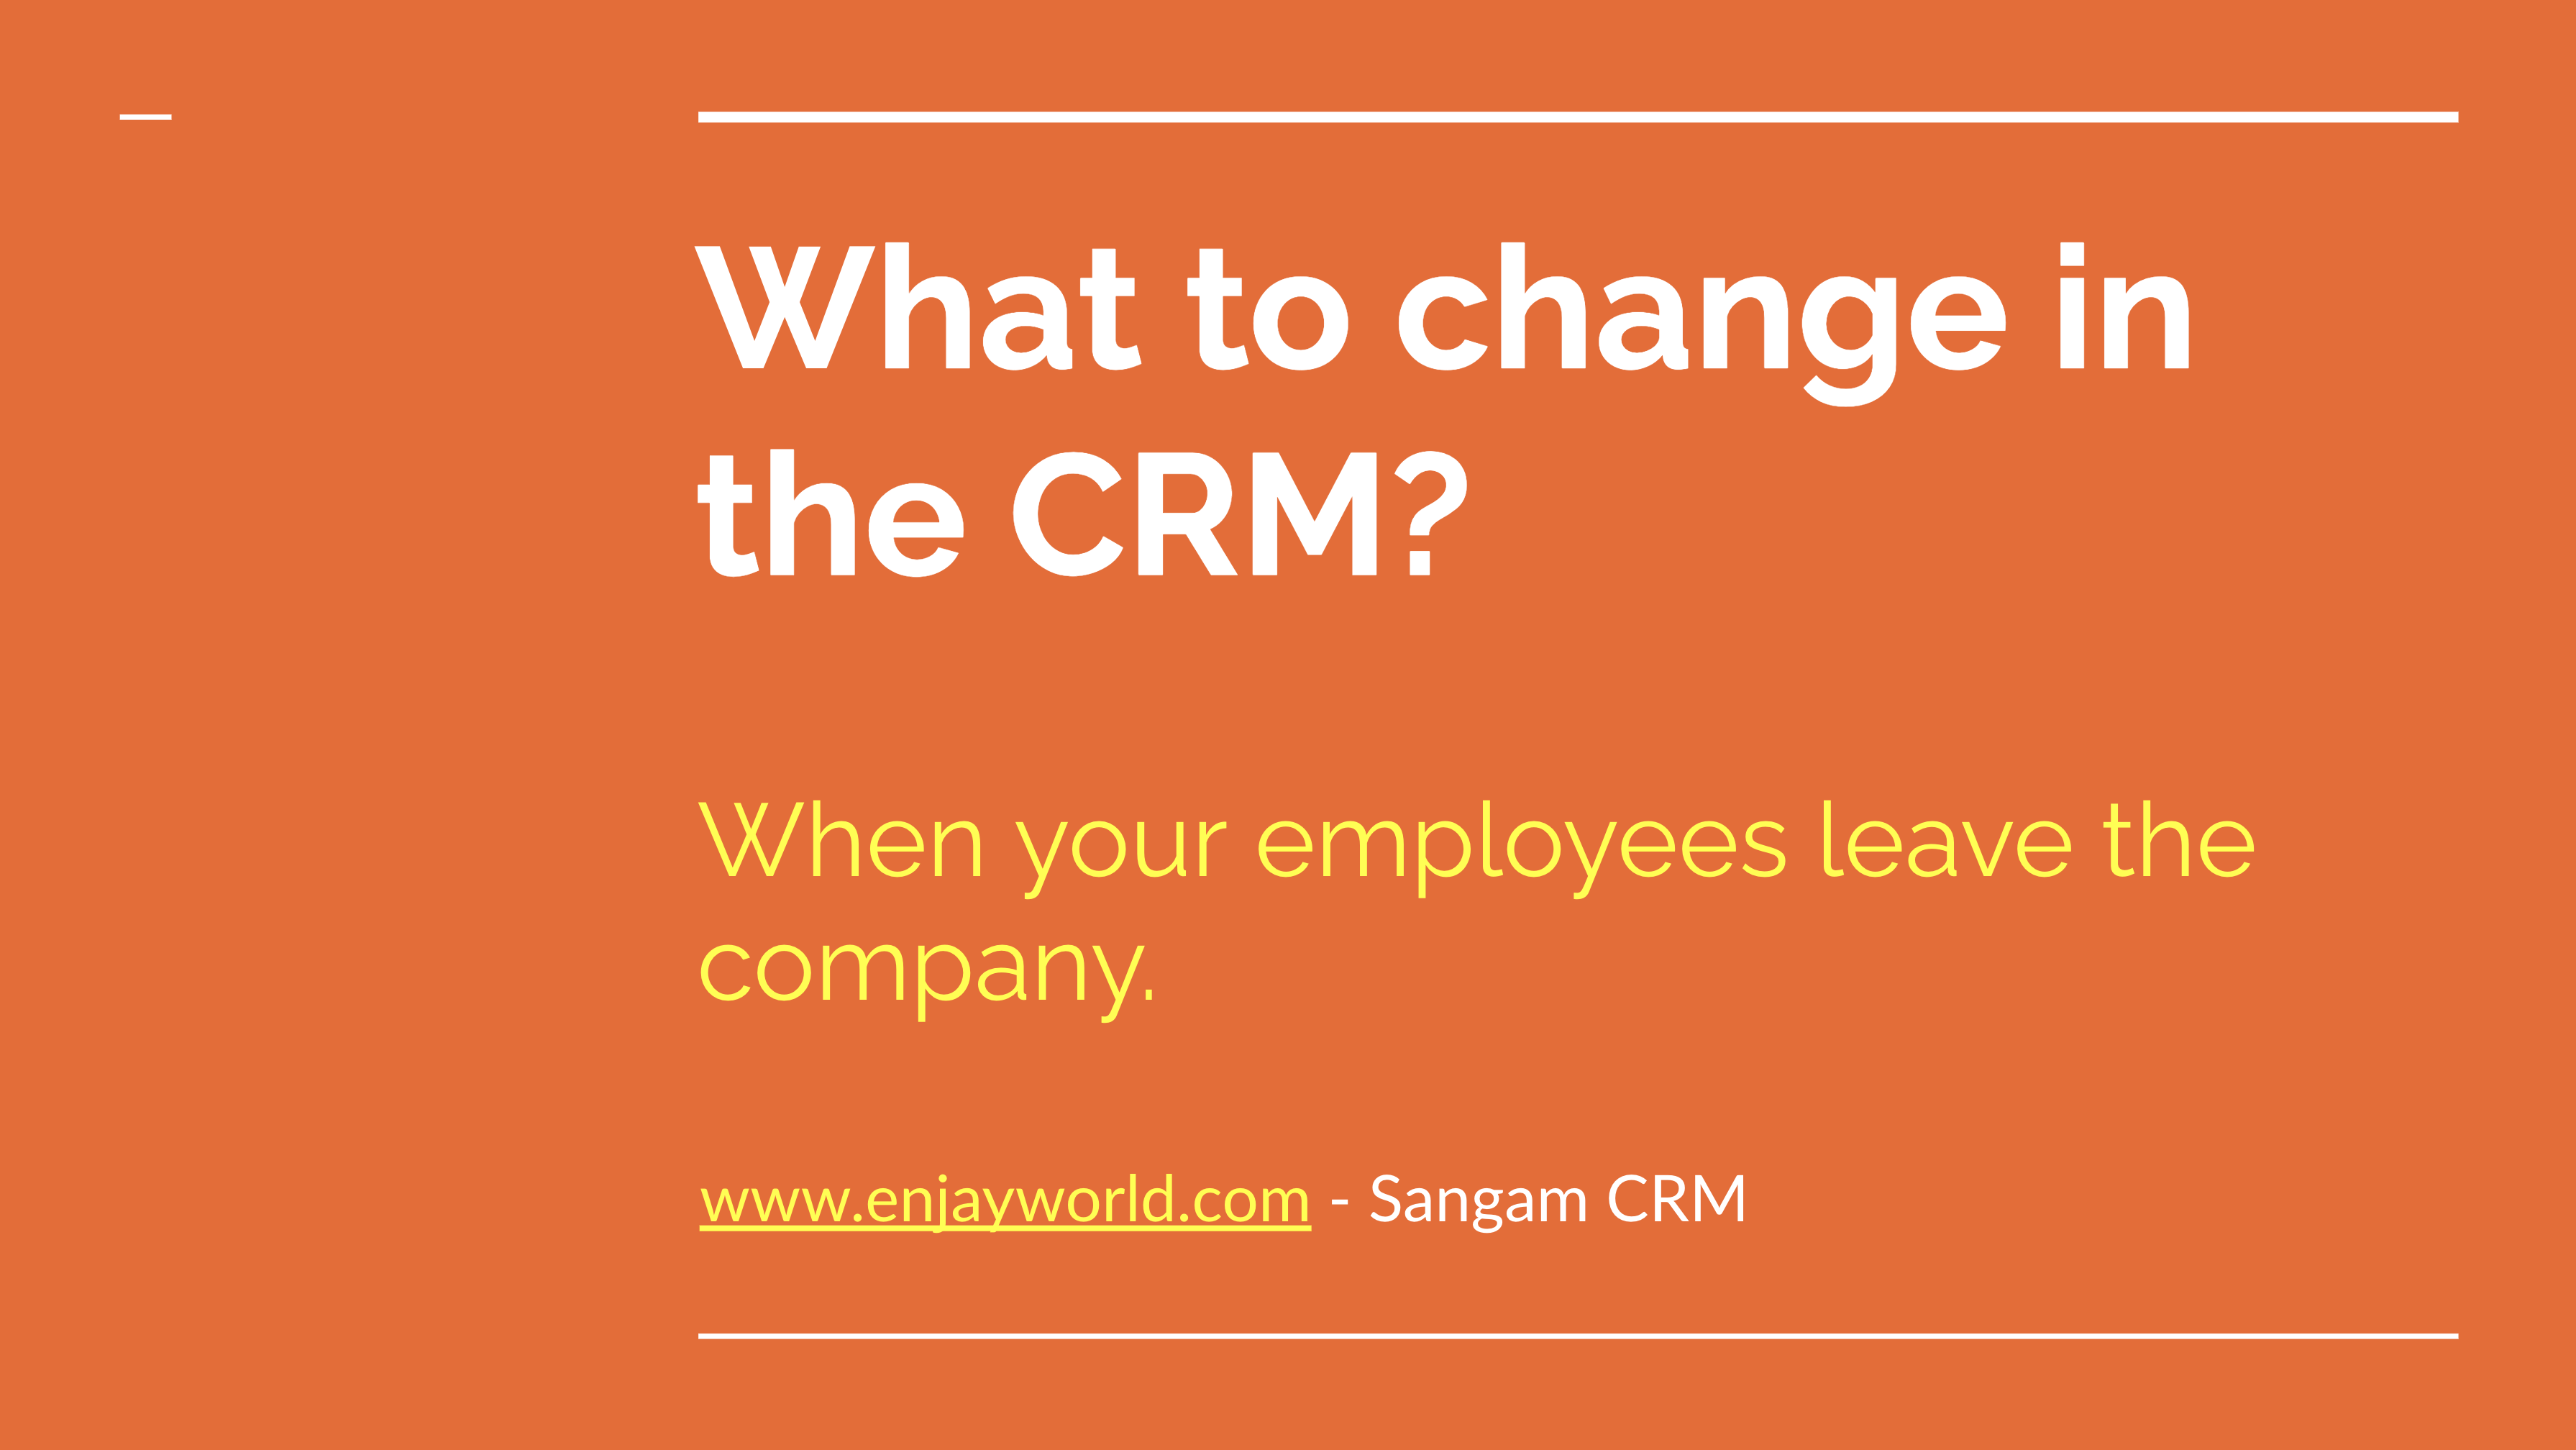 What to change in CRM when employee leave the company